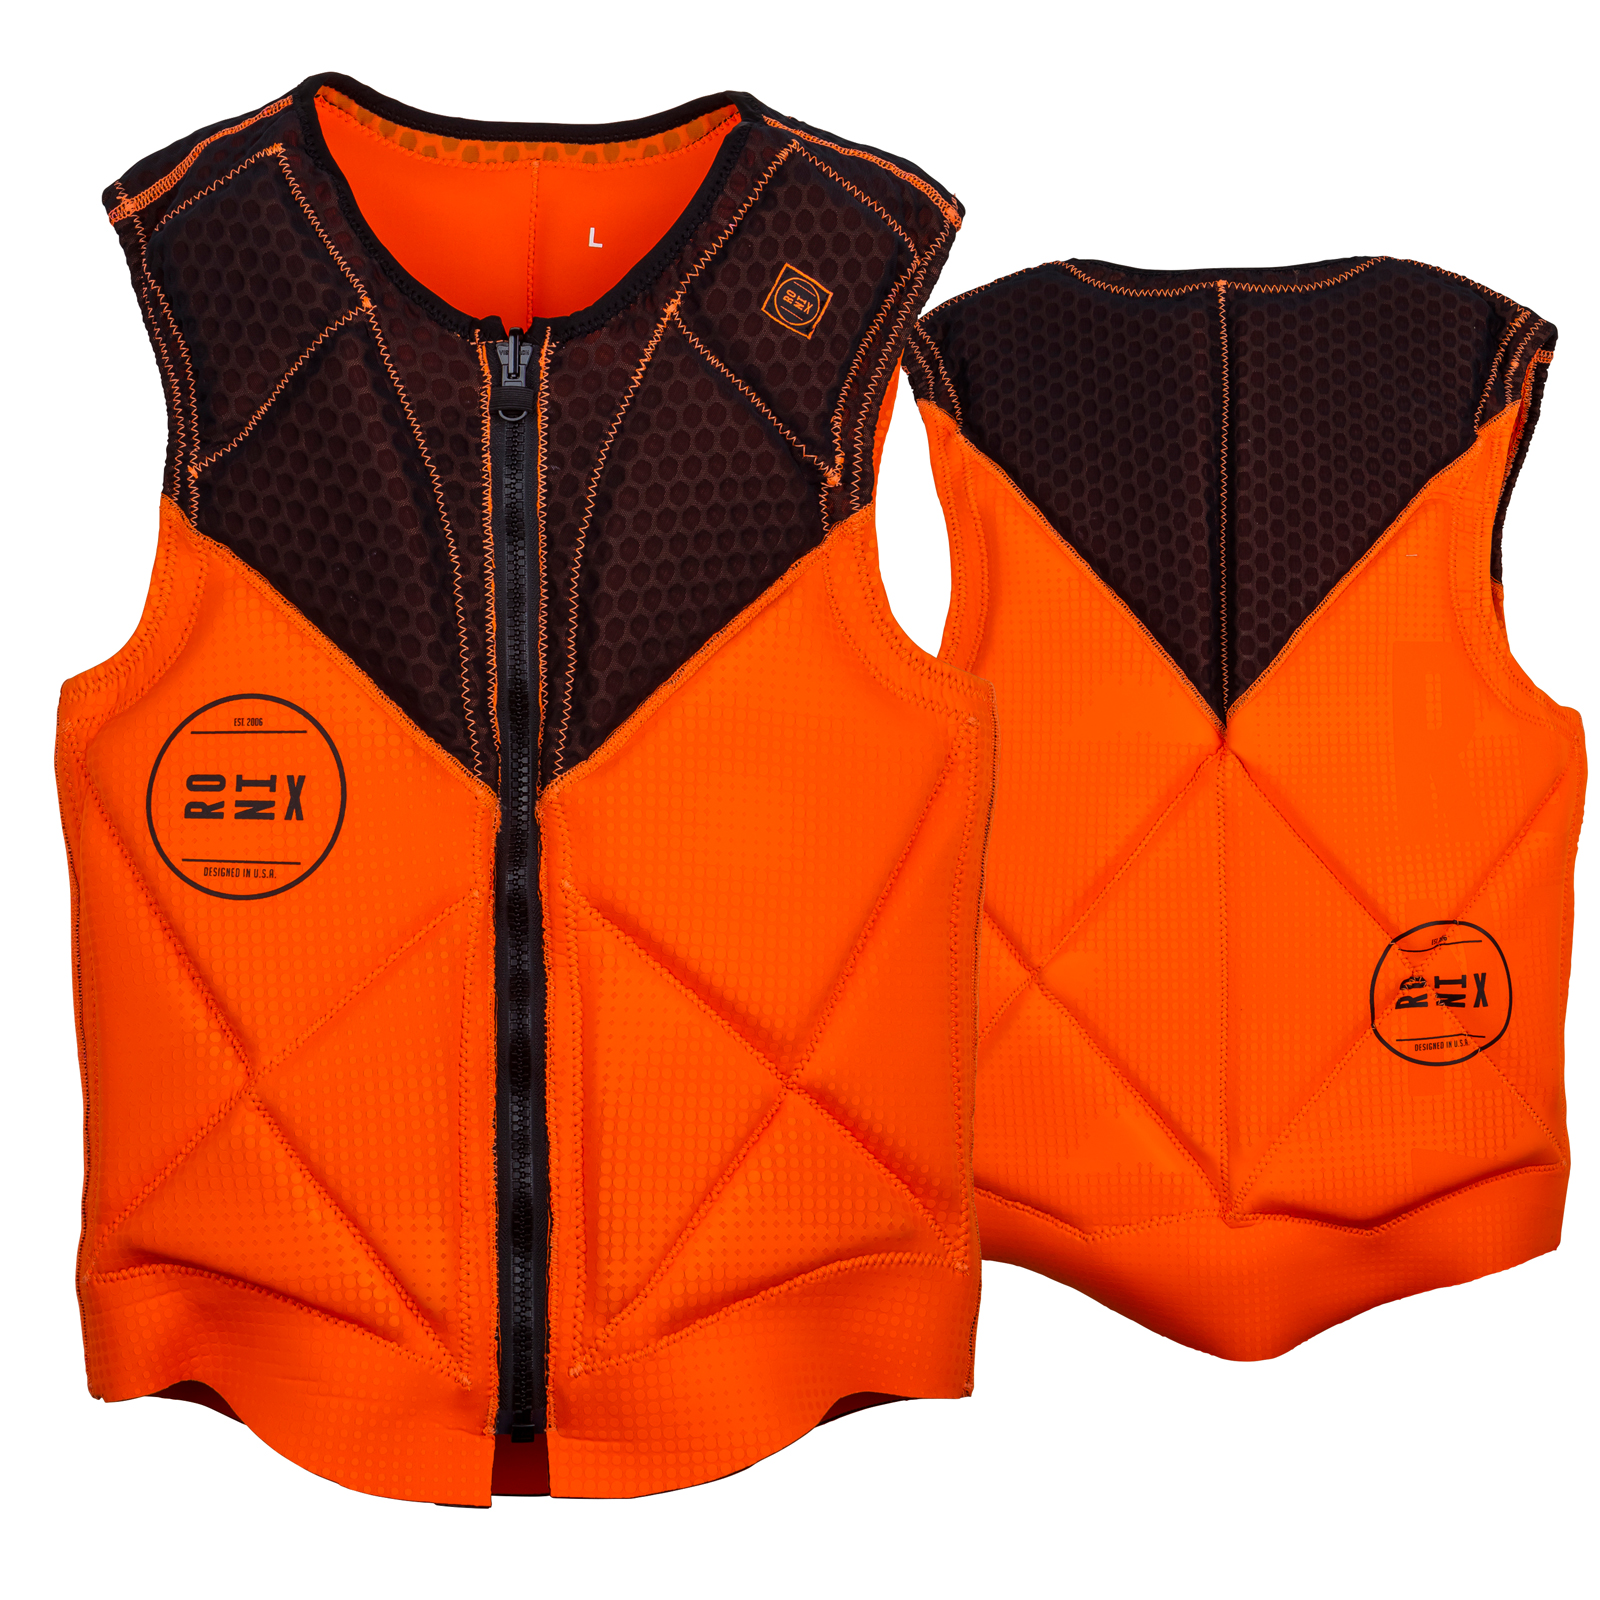 PARKS ATHLETIC CUT REVERSIBLE IMPACT VEST RONIX 2017